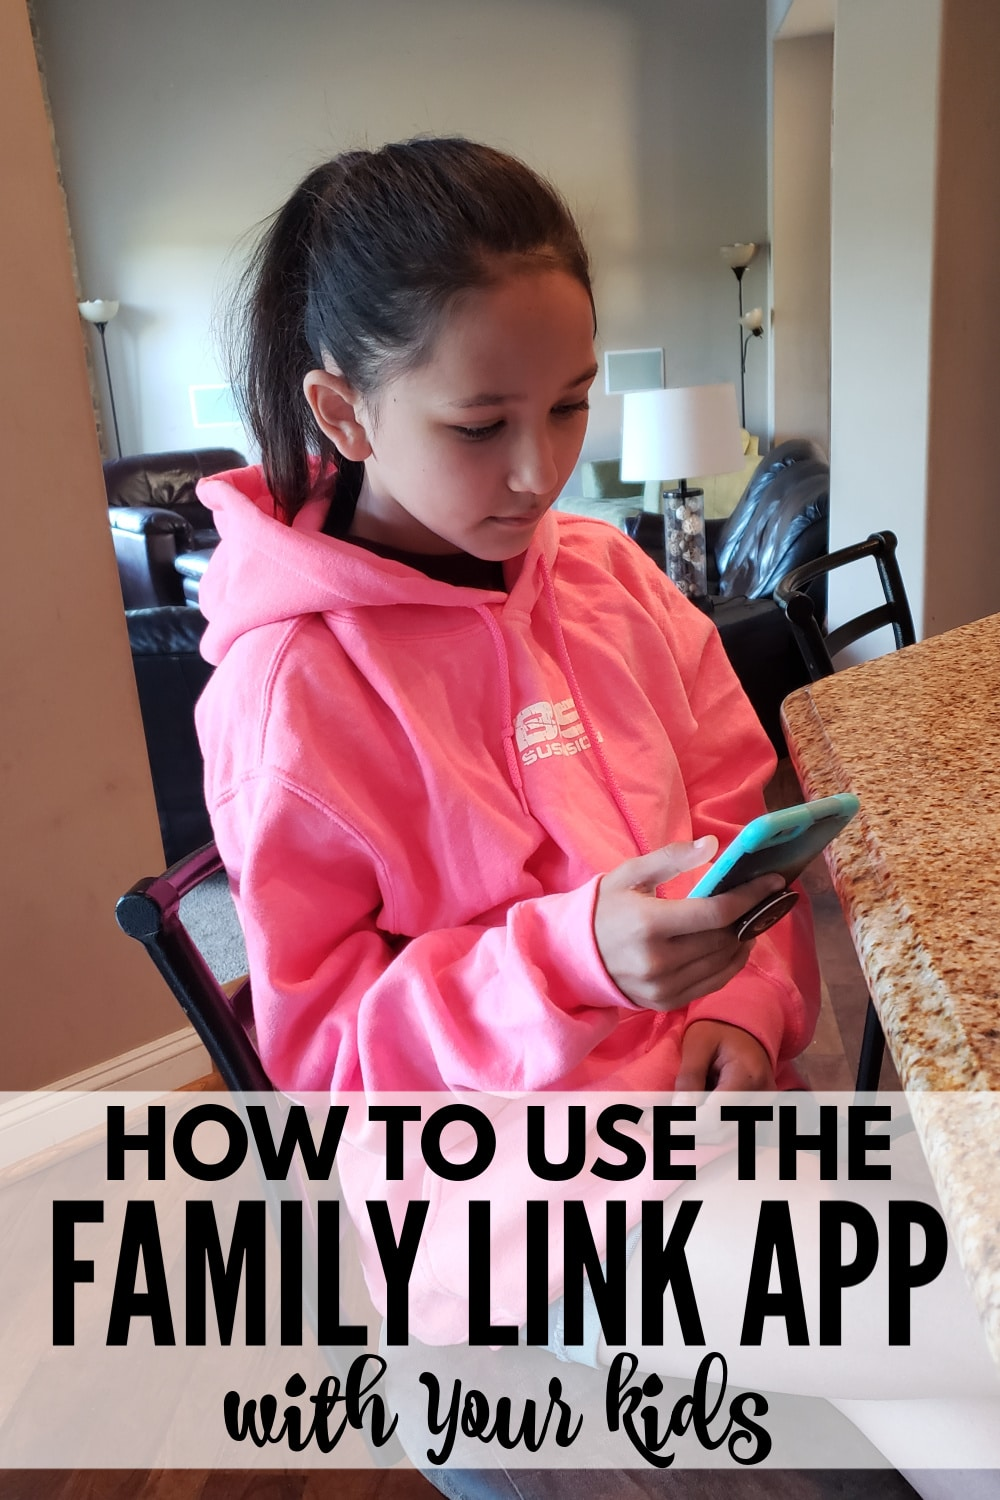 If you don't want to keep your children from enjoying technology, but want to help them use it responsibly, check out how to use family link from google. #familylink #google #familylinkapp  via @wondermomwannab